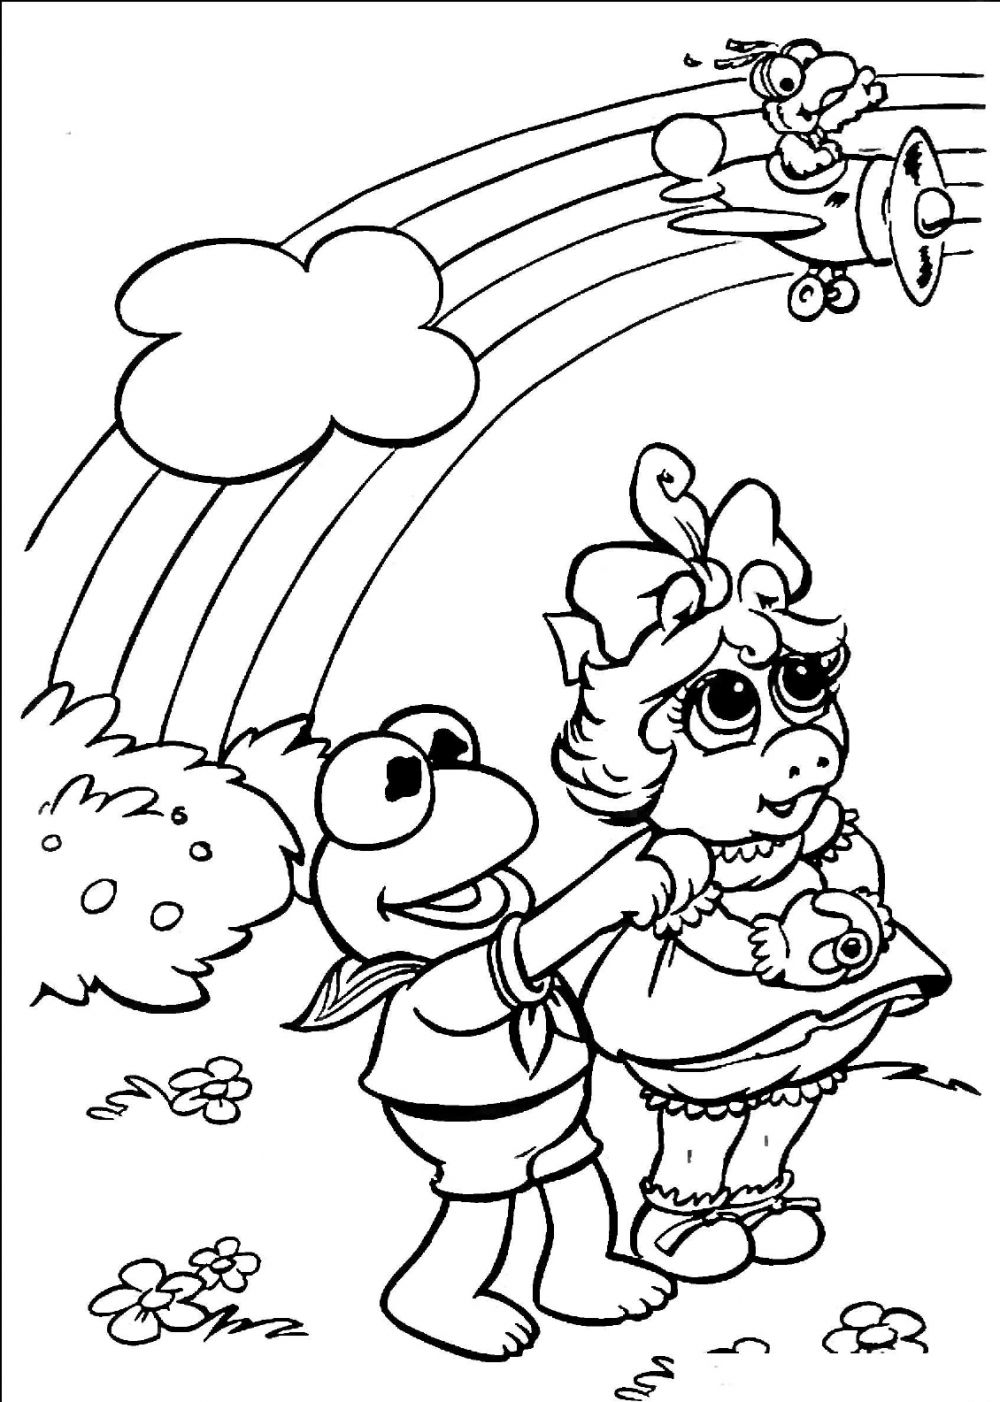 coloring page for kids dory coloring pages best coloring pages for kids for coloring kids page